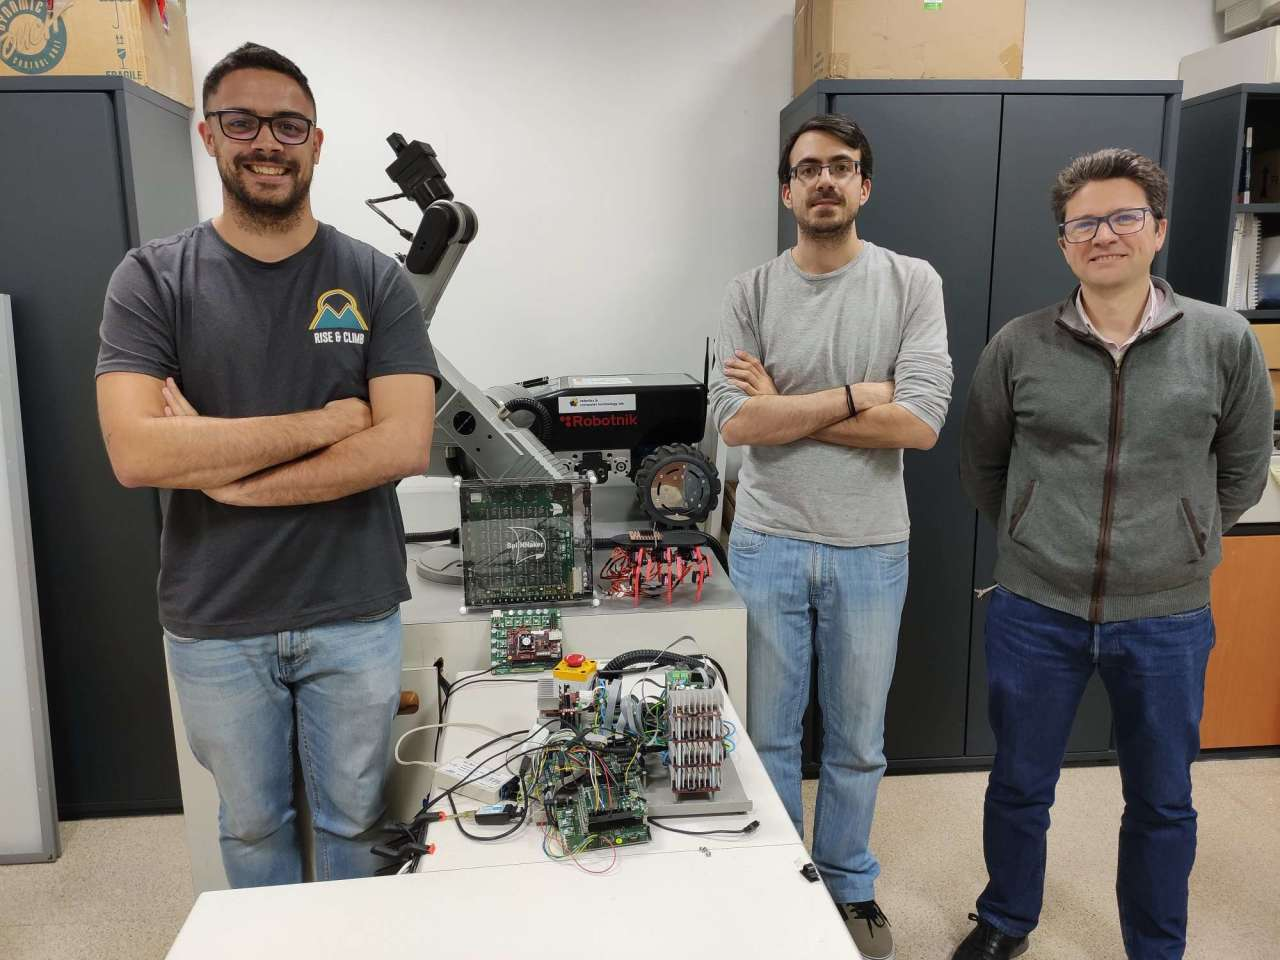 From right to left, team members Juan Pedro Domínguez, Alejandro Linares and Daniel Gutiérrez